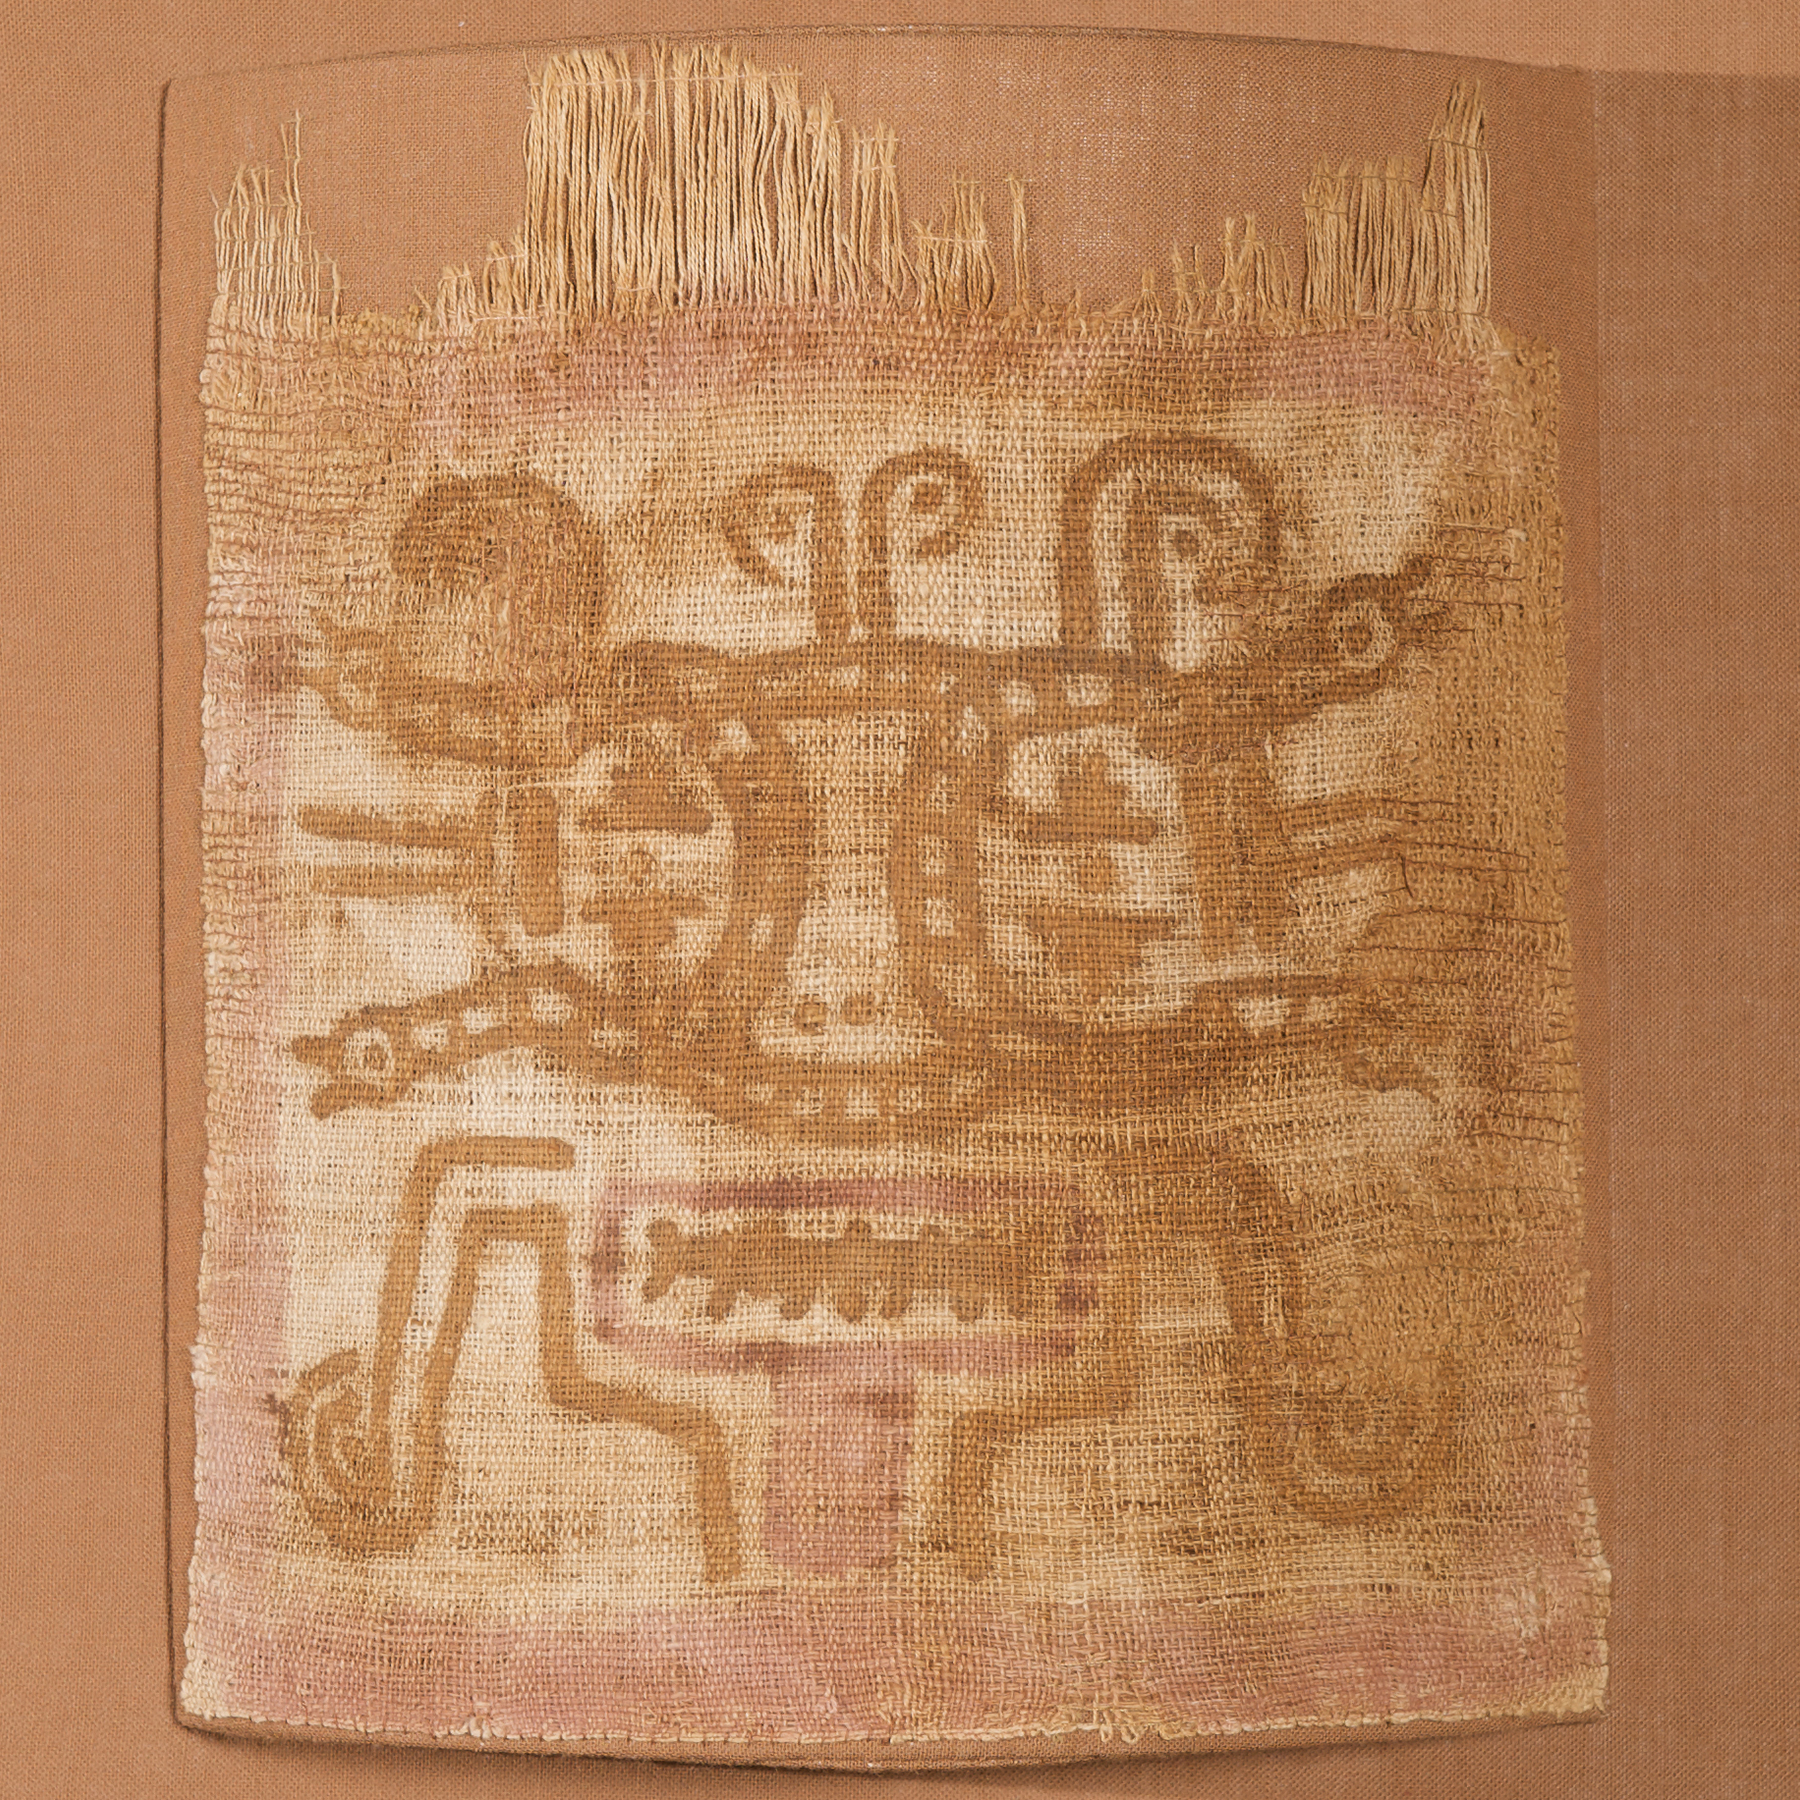 Mummy Mask with Snake Eyes Painted Textile, Paracas Culture, 300 BC